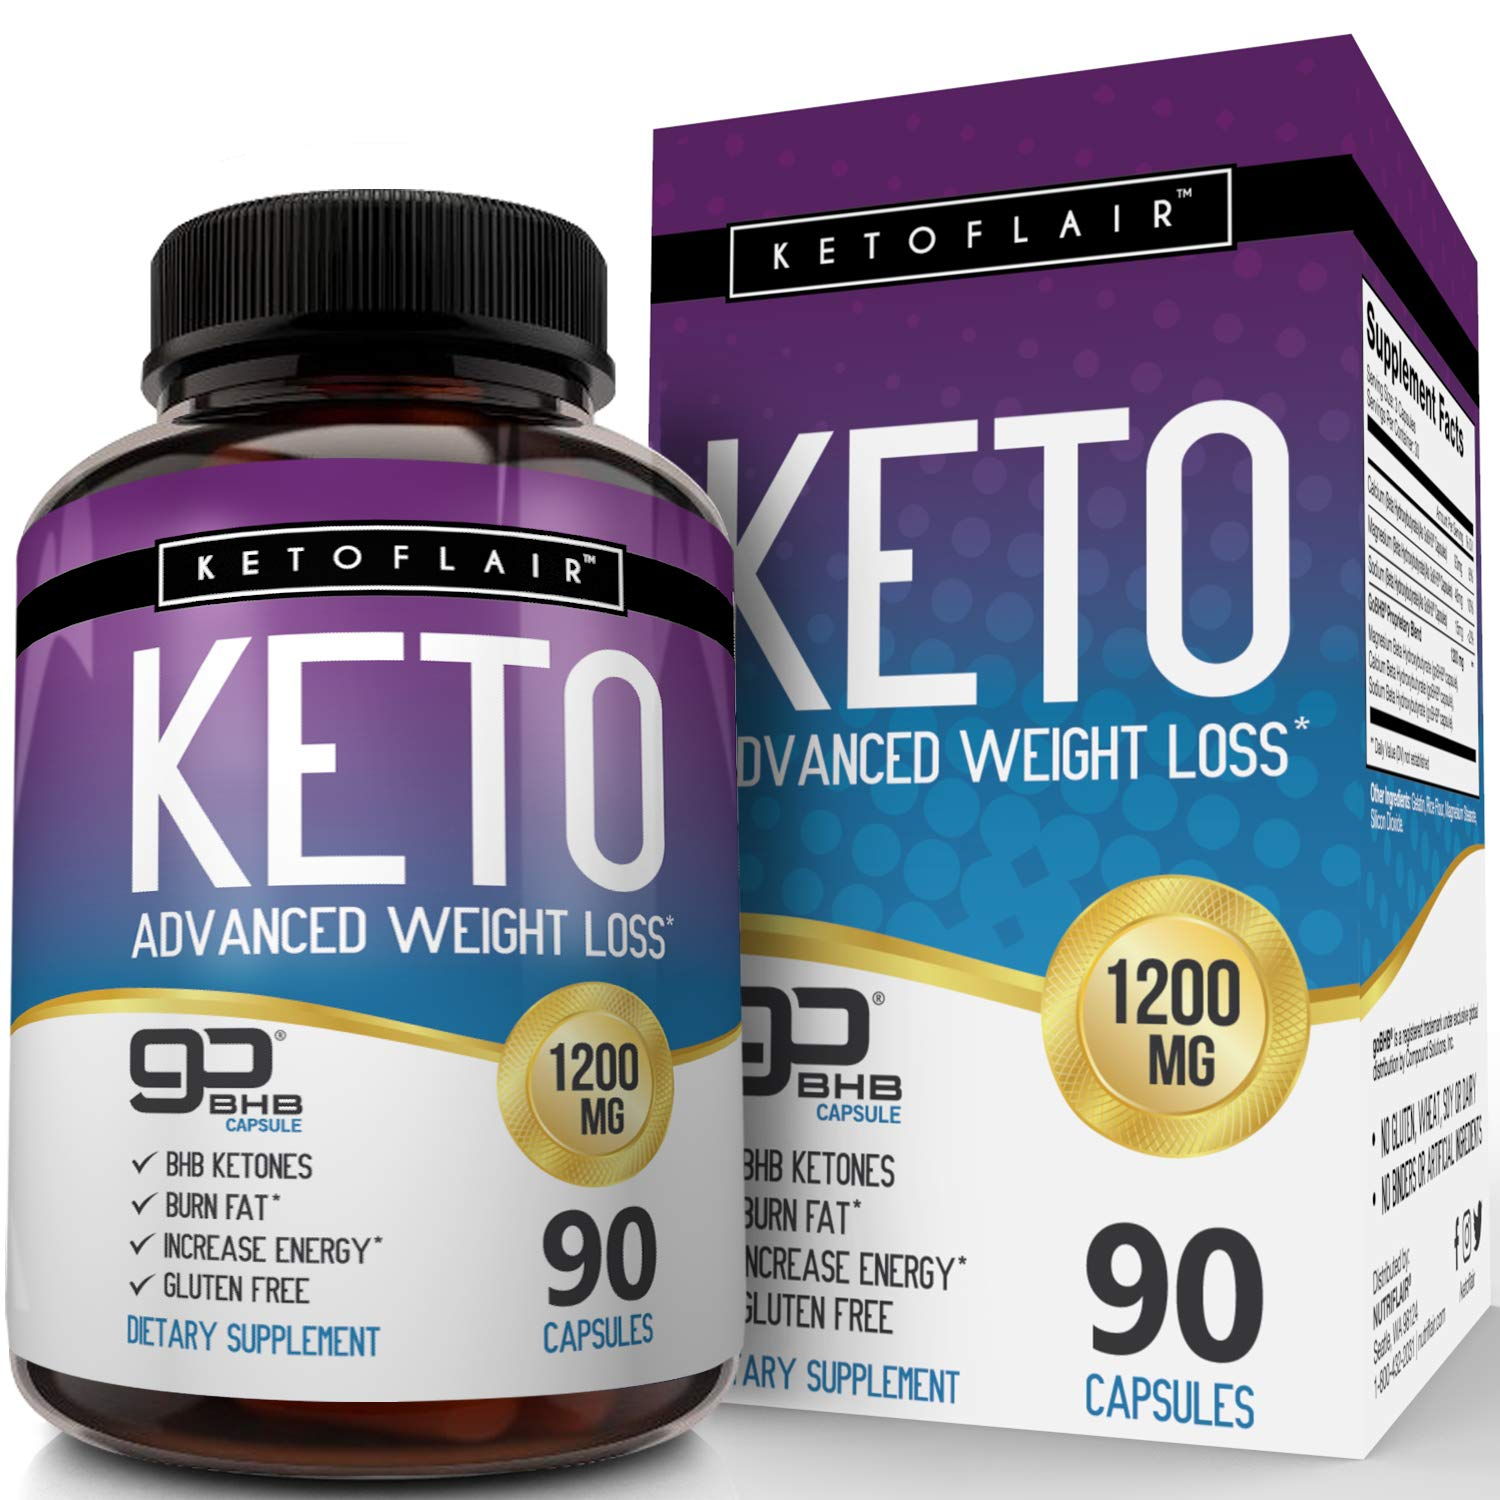 Best Keto Diet Pills GoBHB 1200mg, 90 Capsules Advanced Weight Loss Ketosis Supplement - Natural BHB Salts (beta hydroxybutyrate) Ketogenic Fat Burner, Carb Blocker, Non-GMO - Best Weight Loss Support by NutriFlair (Image #3)